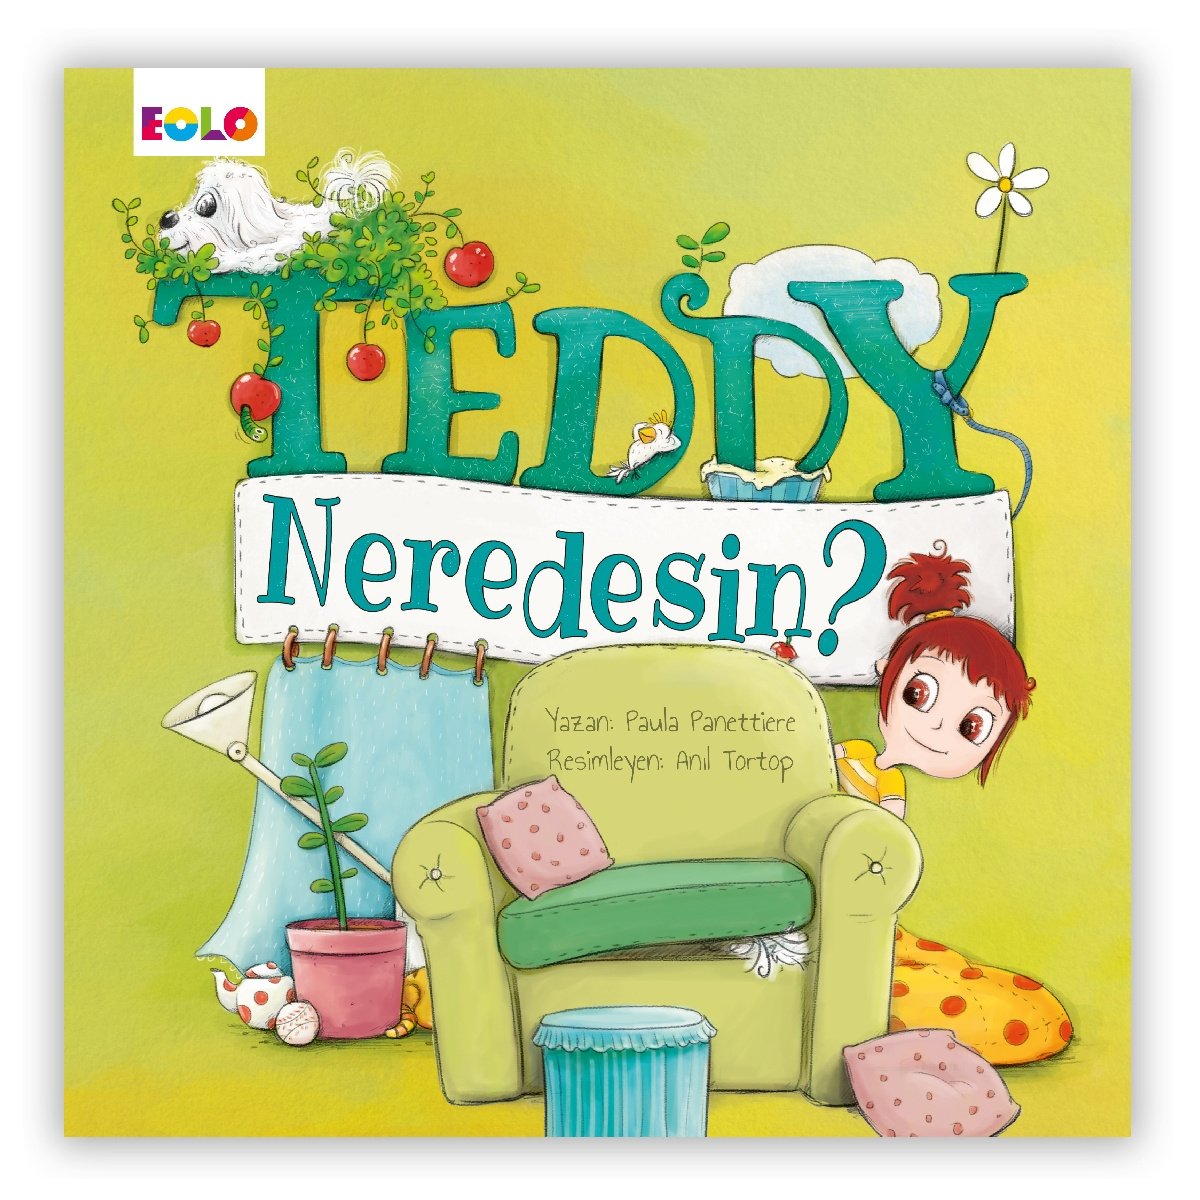 Teddy Neredesin?